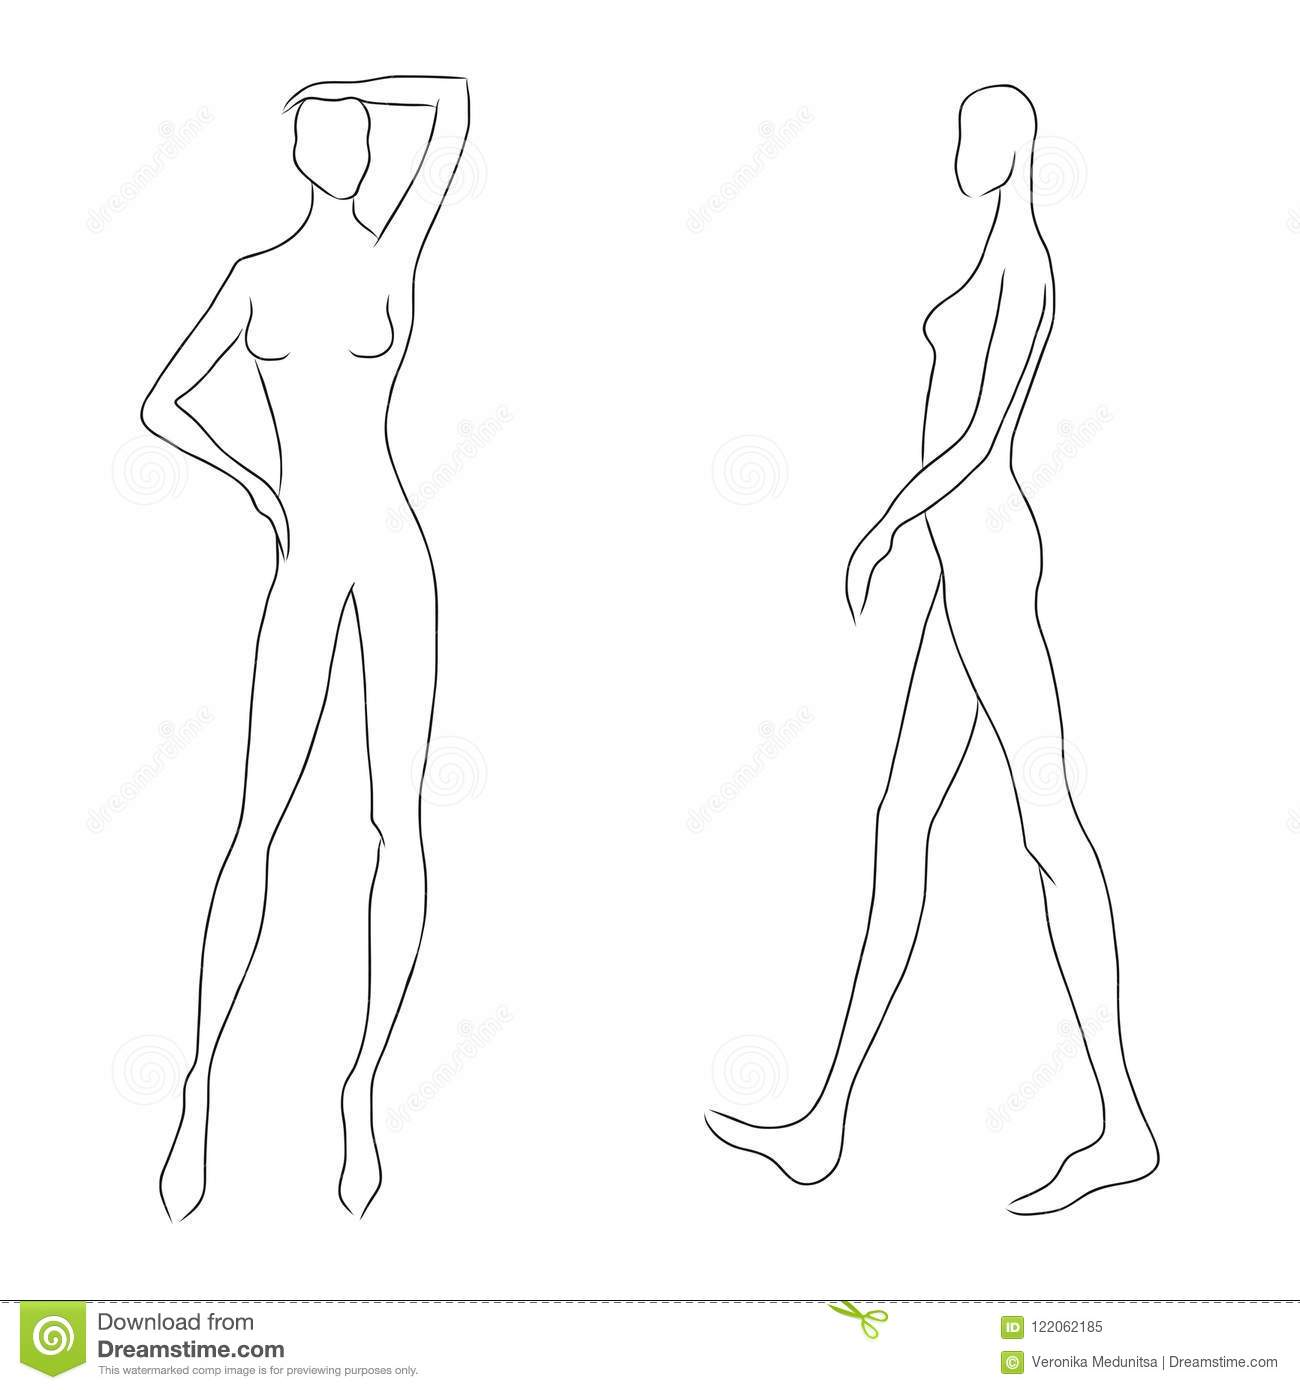 women s figure sketch different poses template for drawing for